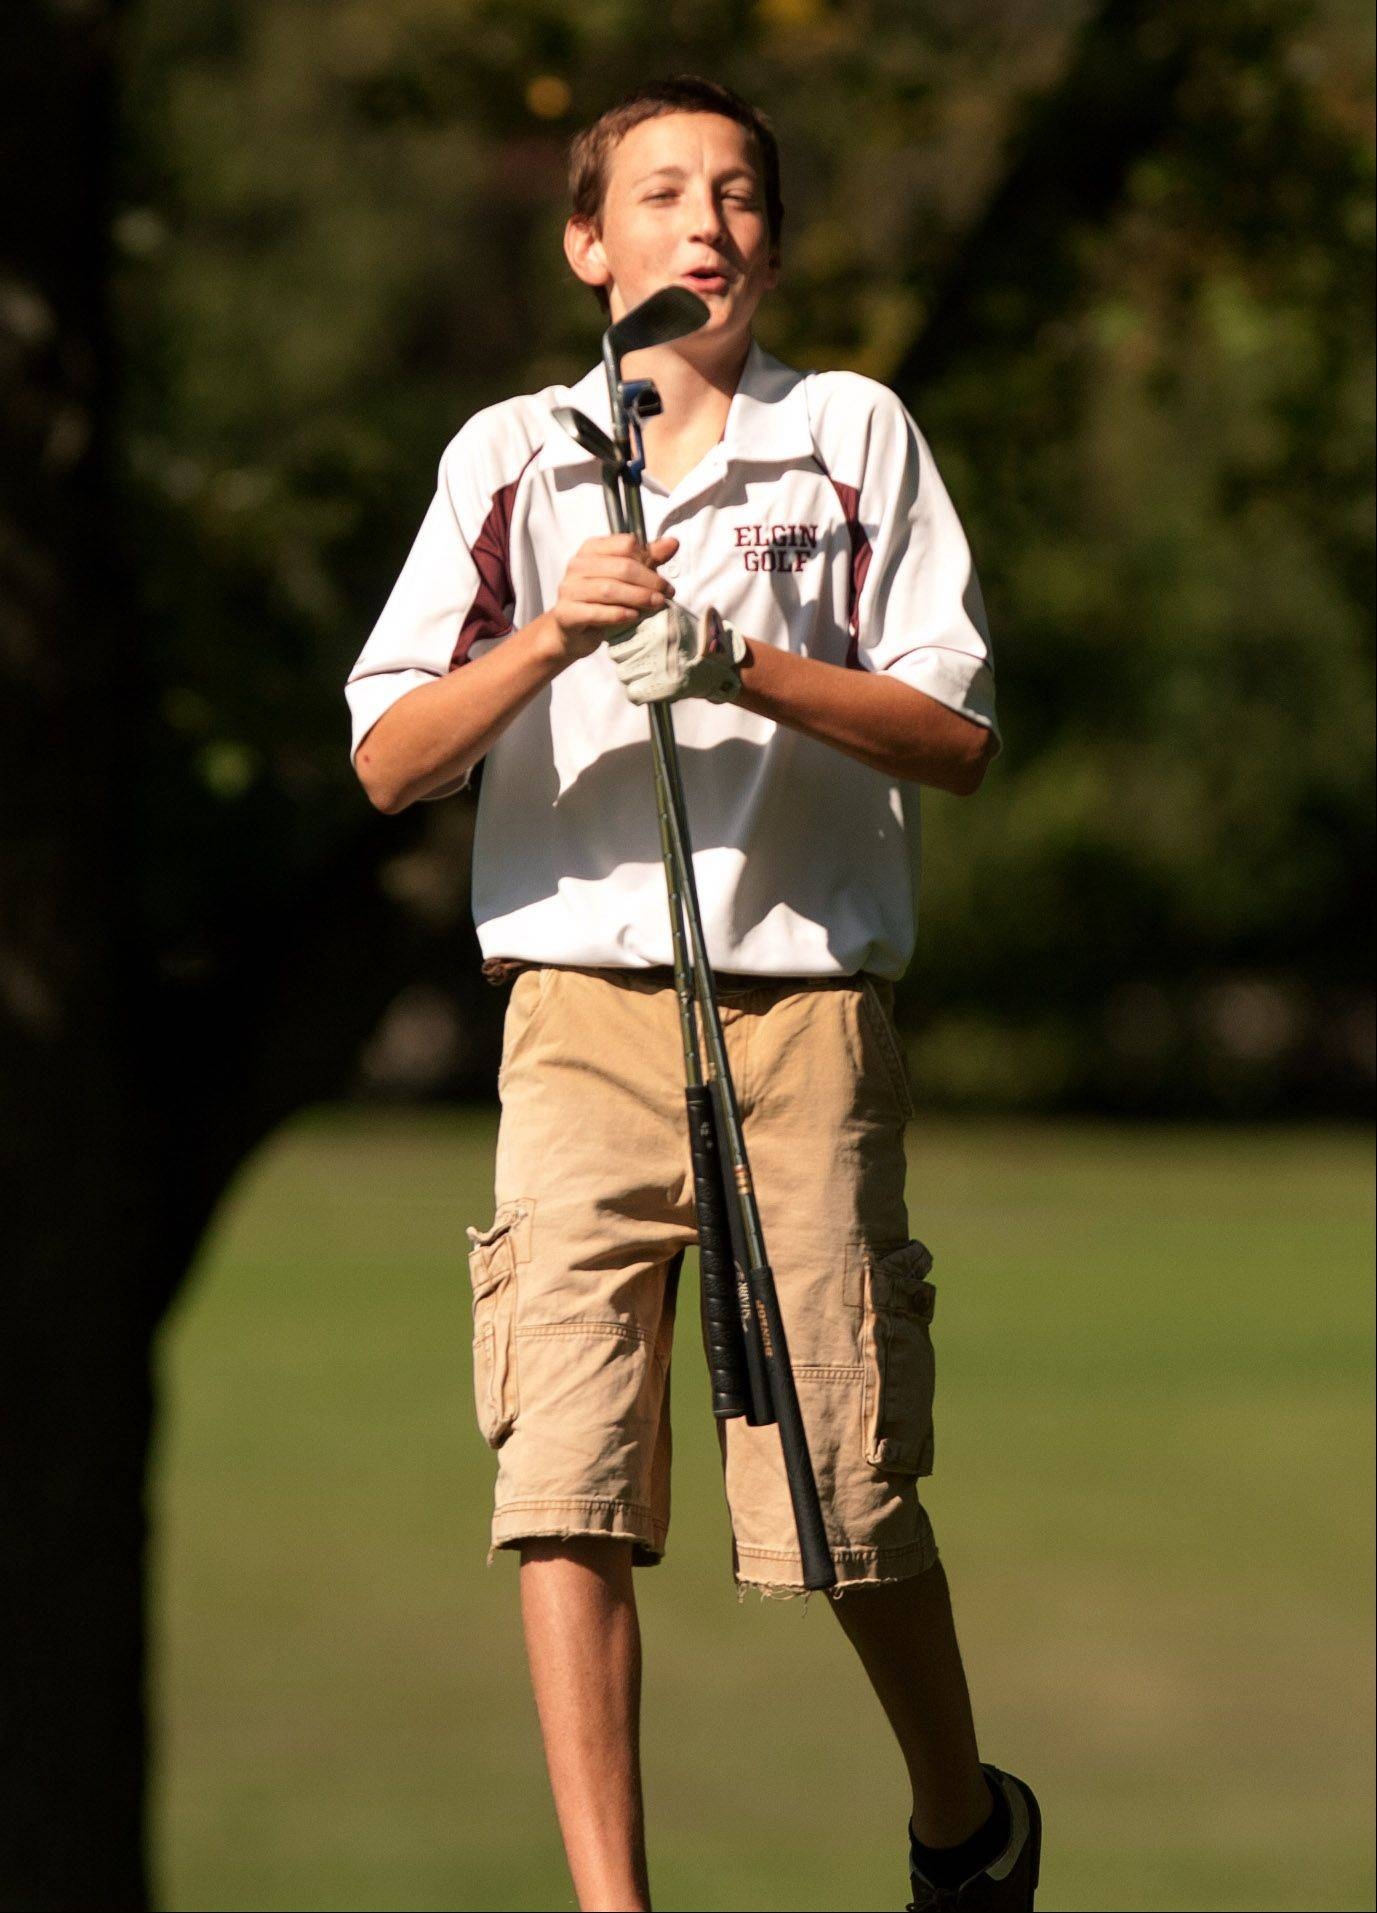 As he gathers his clubs, Elgin's Josh Hegel reacts to sinking a 35 foot putt, during the Upstate Eight Conference boys golf tournament at St. Andrews Country Club in West Chicago.